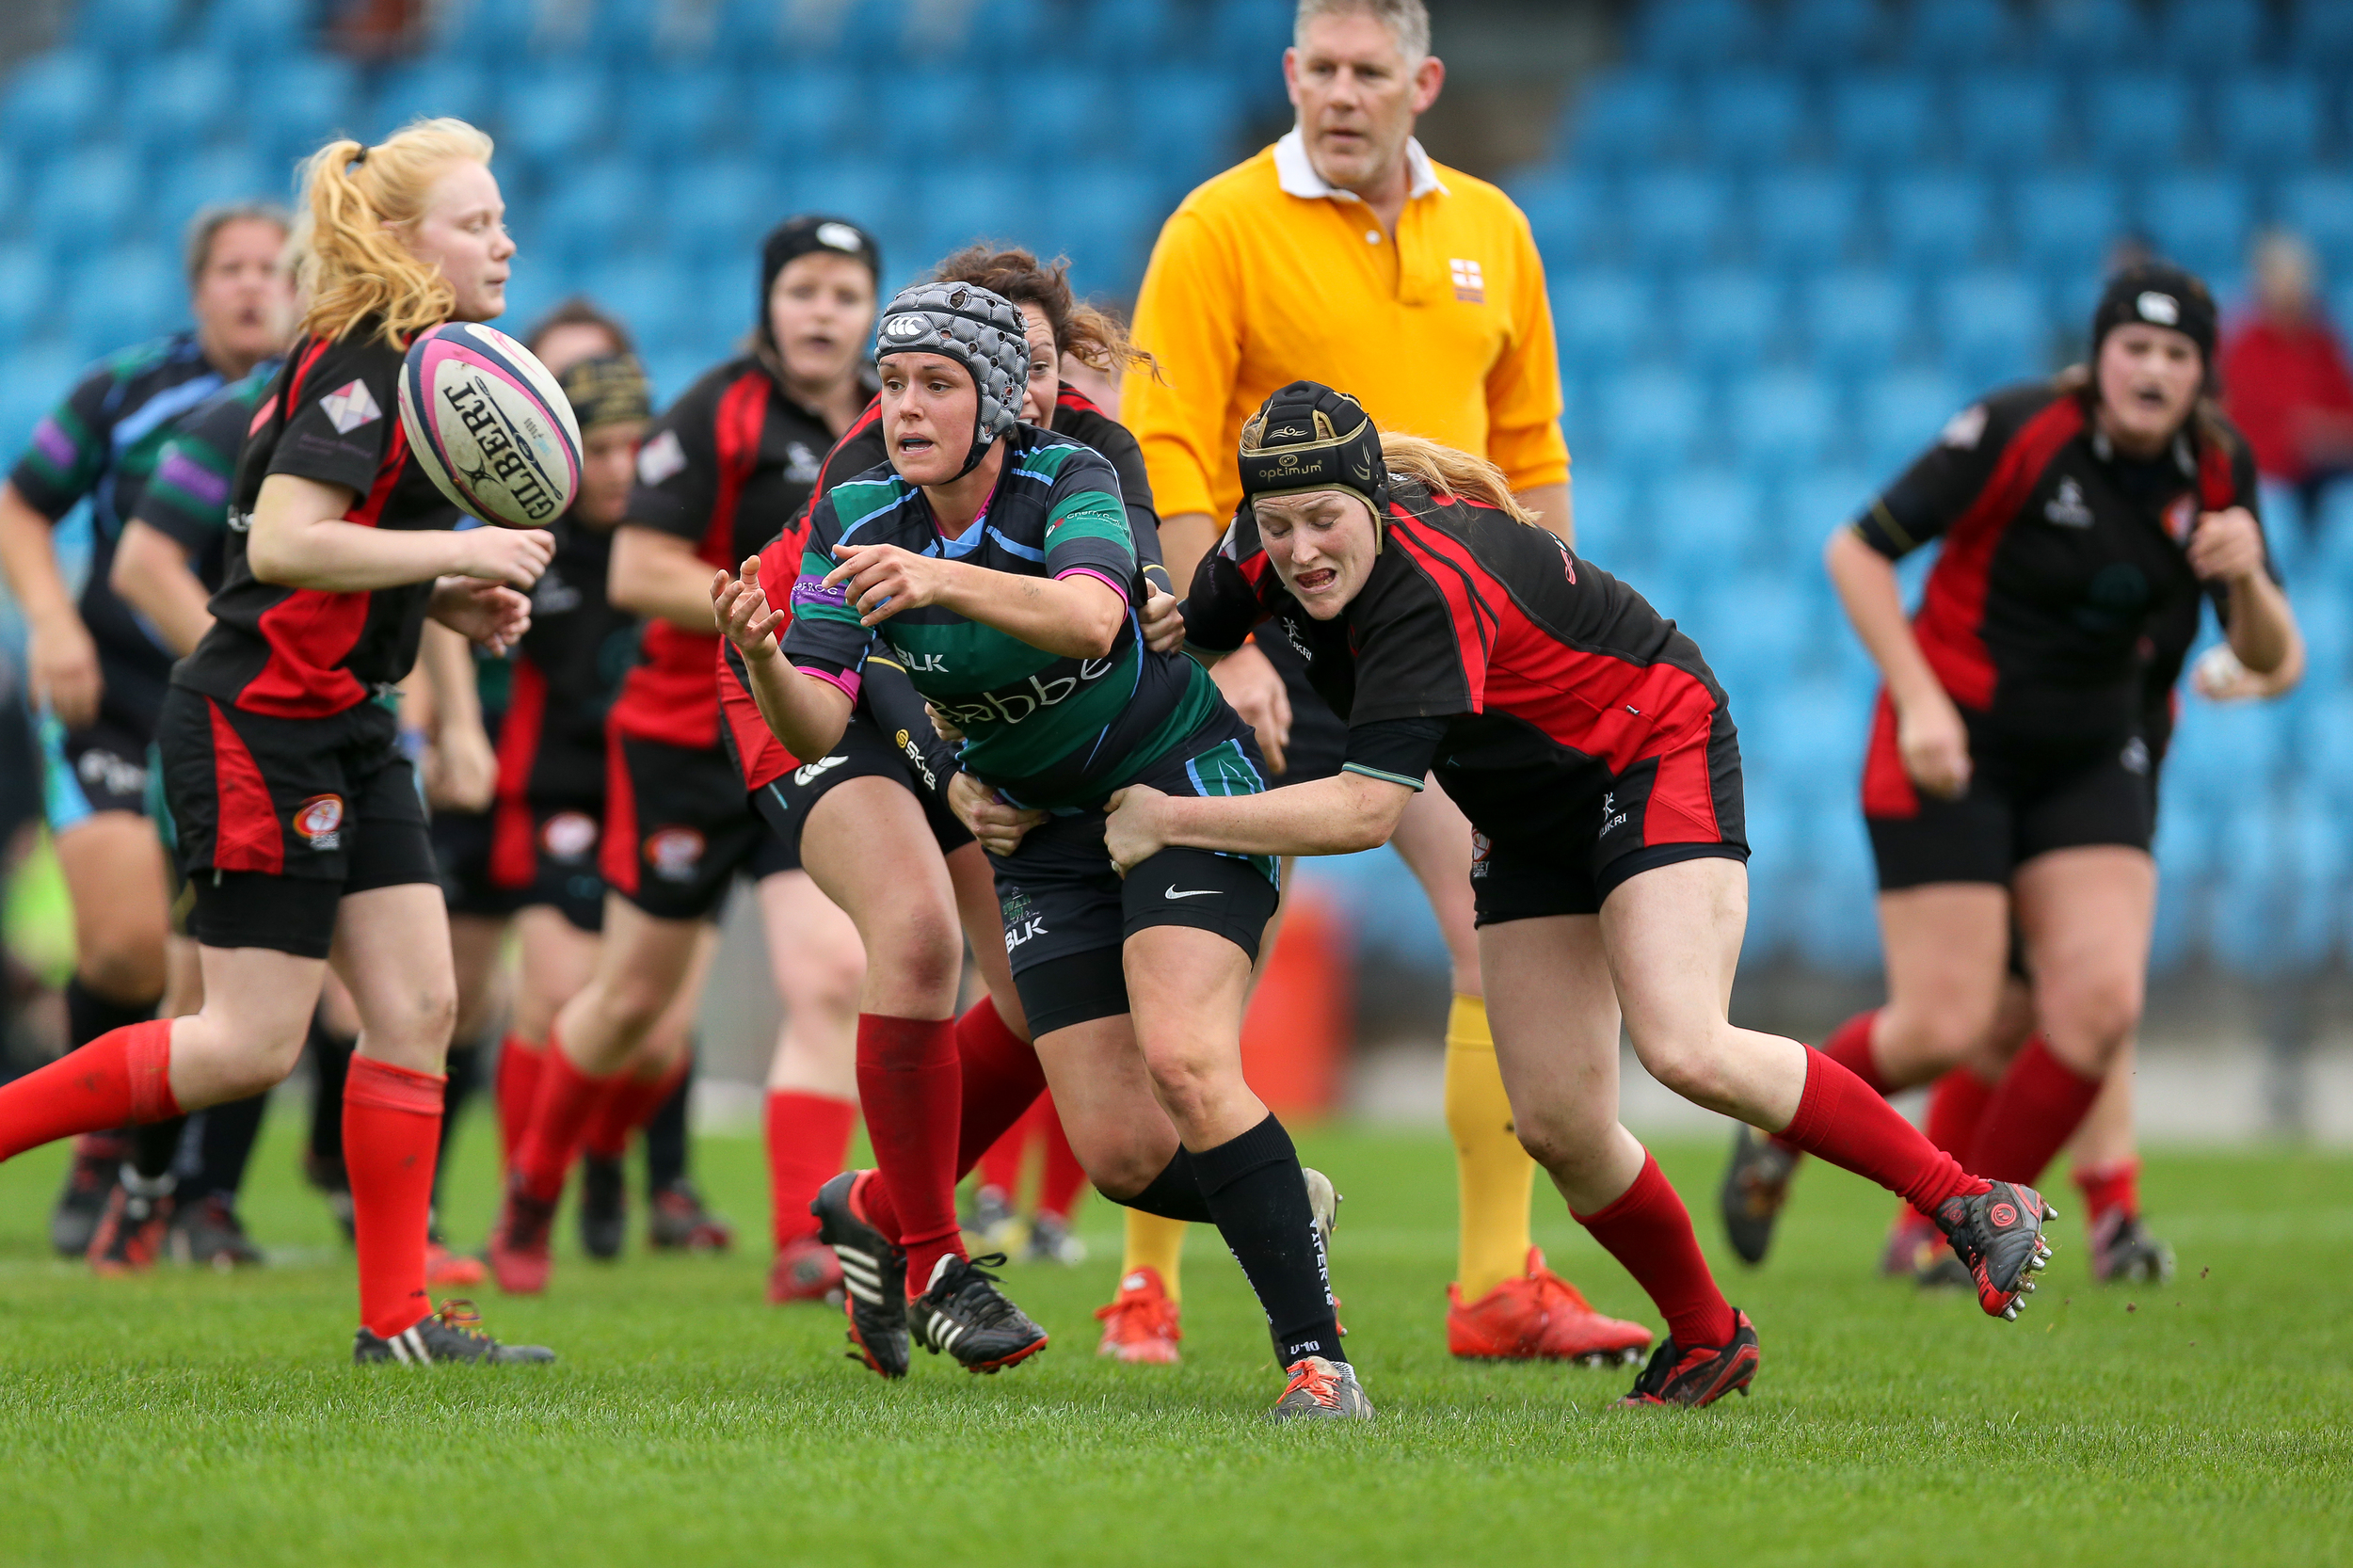 Guernsey Ladies Jemma Crouse feeds ball against Jersey.... Check out the Guernsey Ladies on their page...